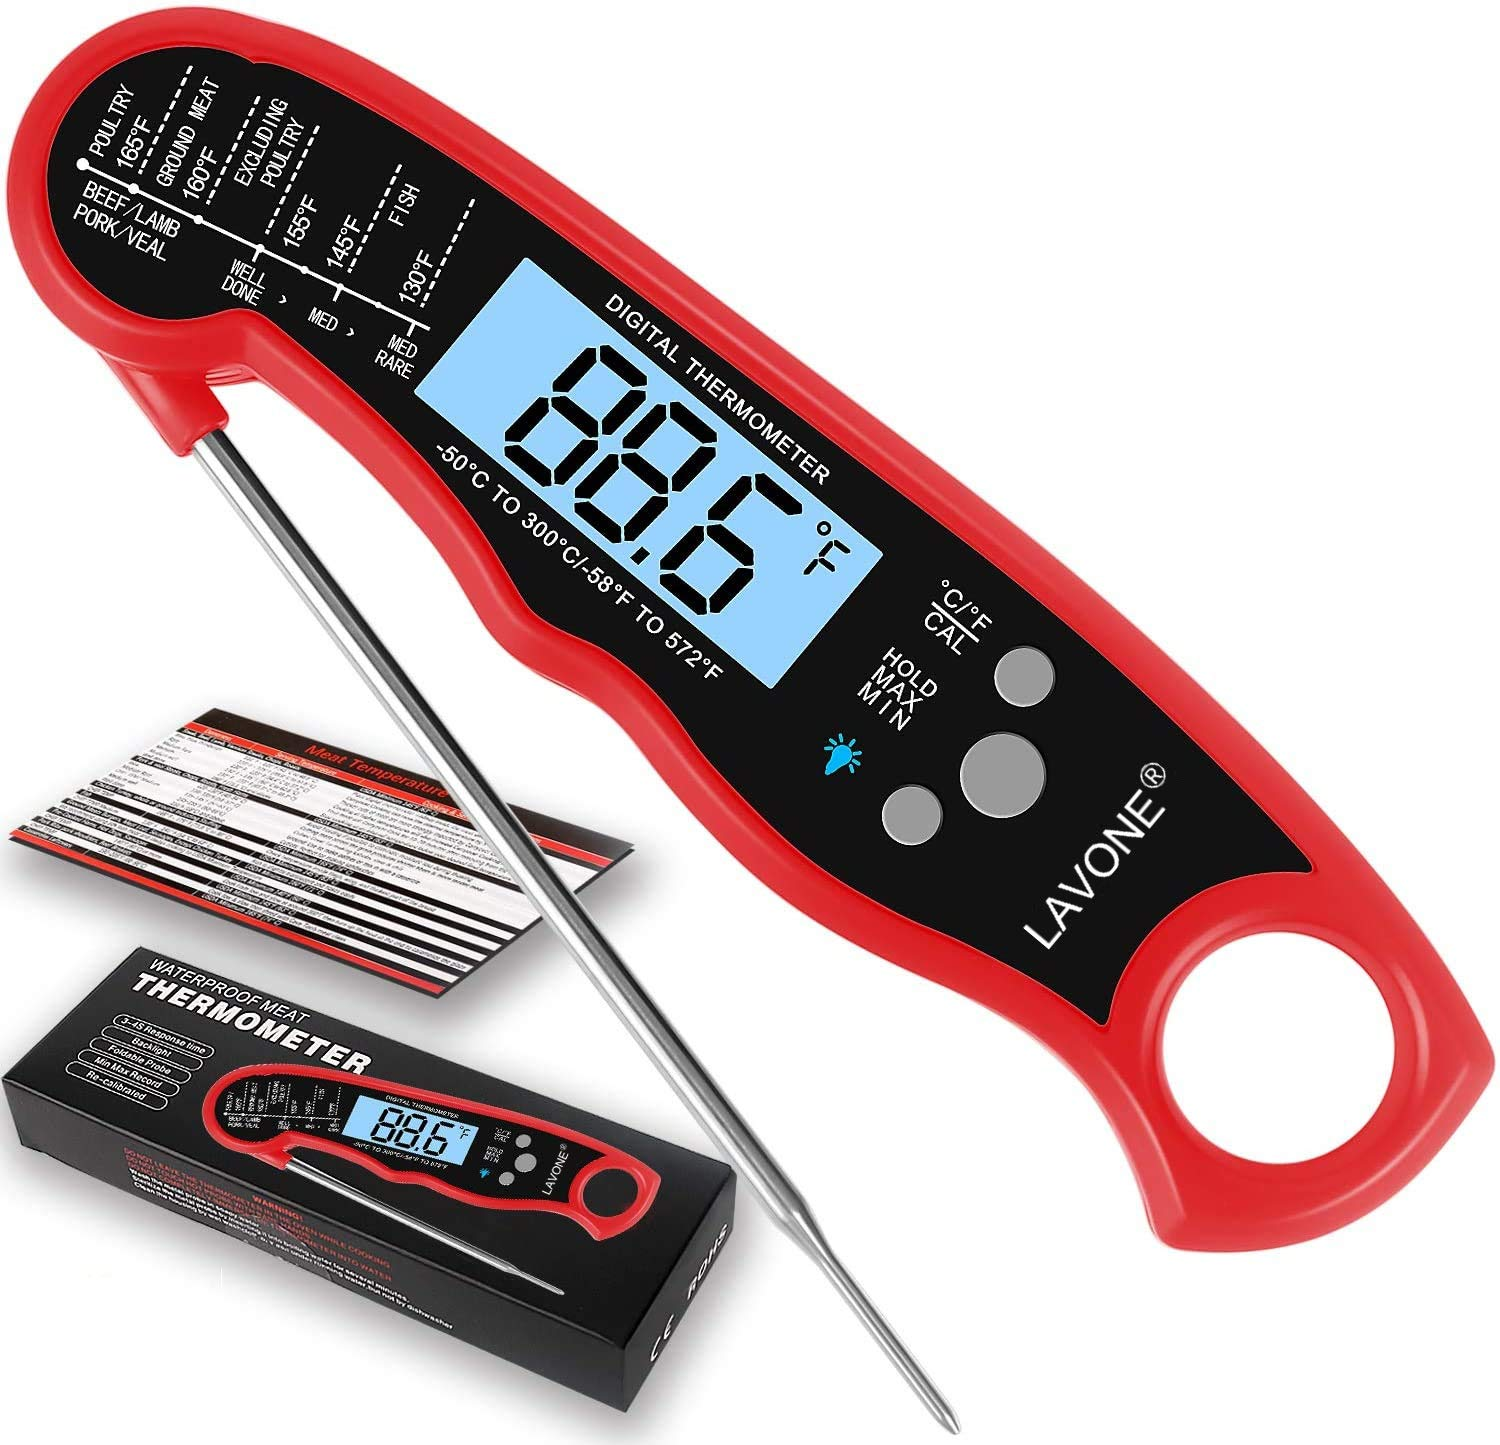 LAVONE Meat Thermometer- Instant Read Meat Thermometer for Cooking, Fast & Precise Digital Food Thermometer with Backlight, Magnet, Calibration, and Foldable Probe for Deep Fry, BBQ and Grill